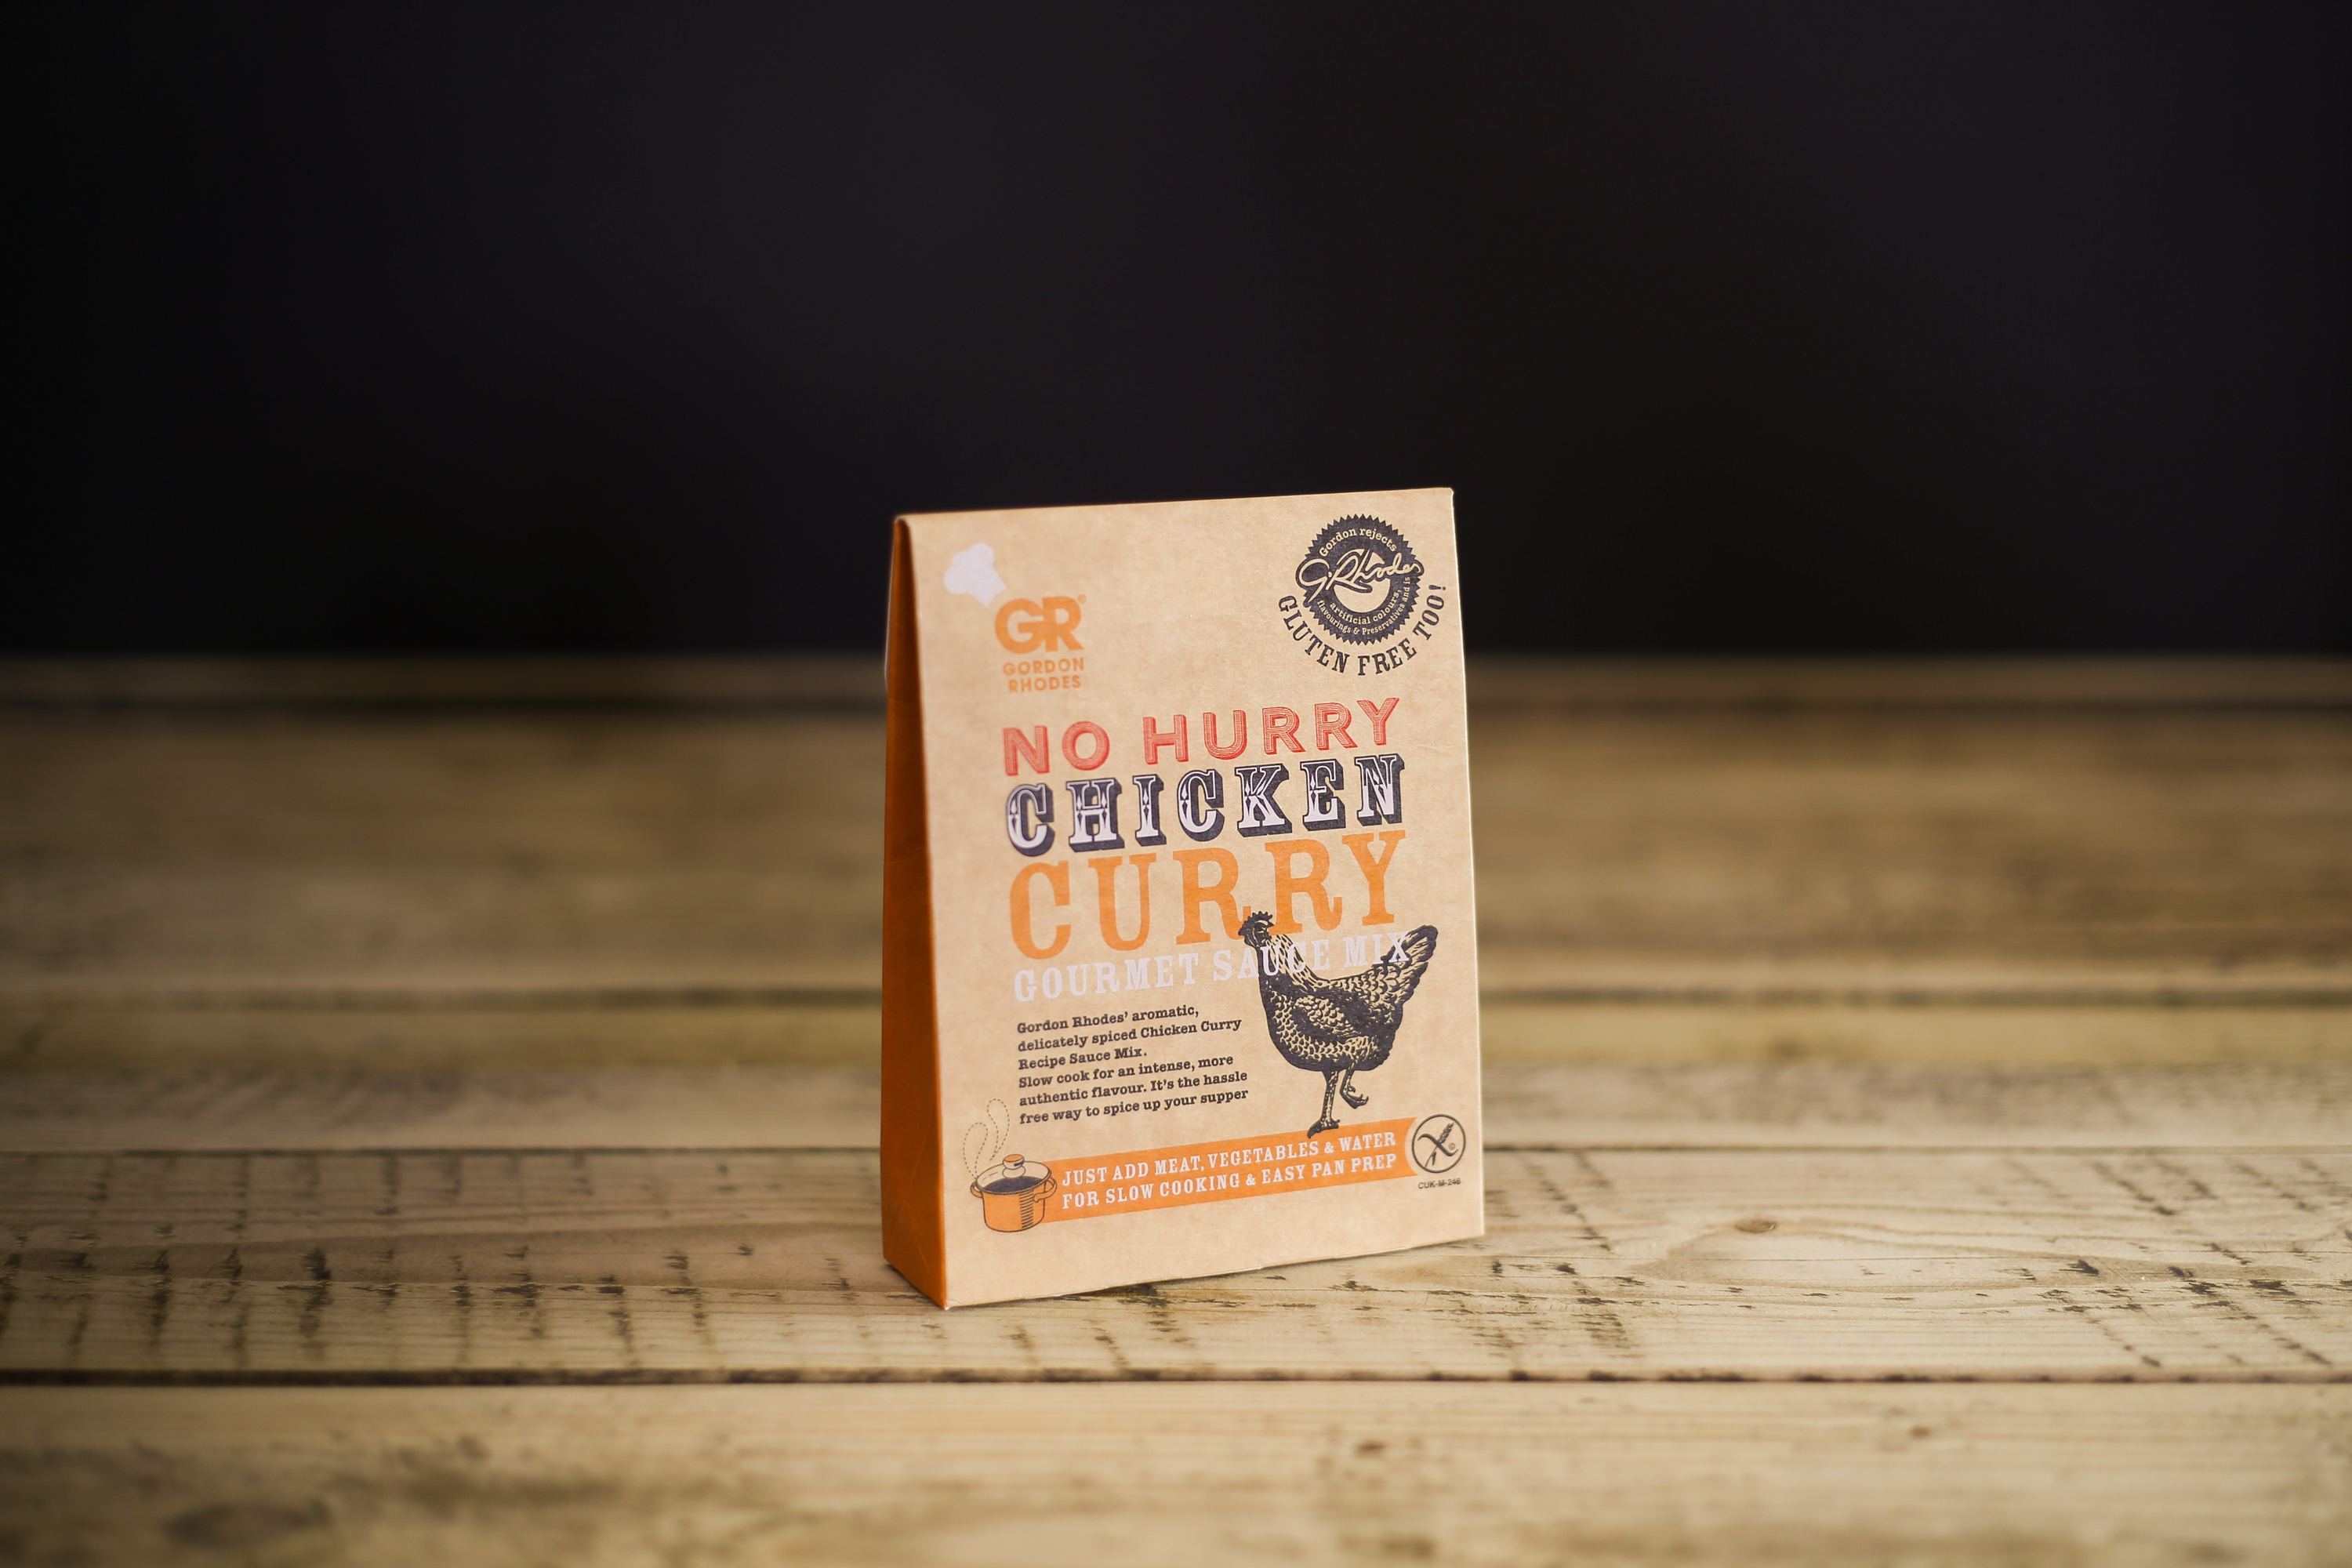 Gordon Rhodes Chicken Curry Gourmet Sauce Mix